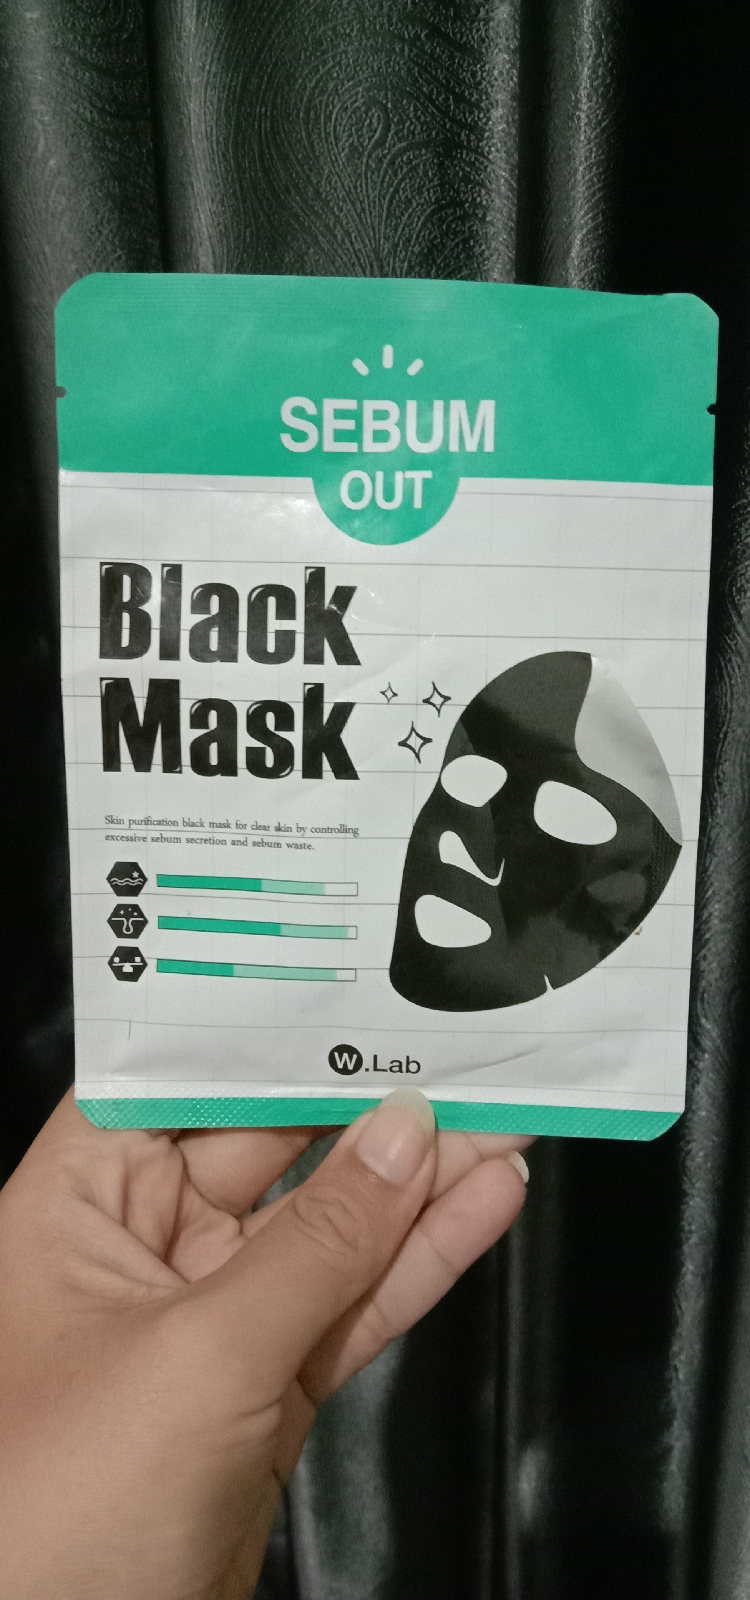 Review W.Lab Sebum Out Black Mask